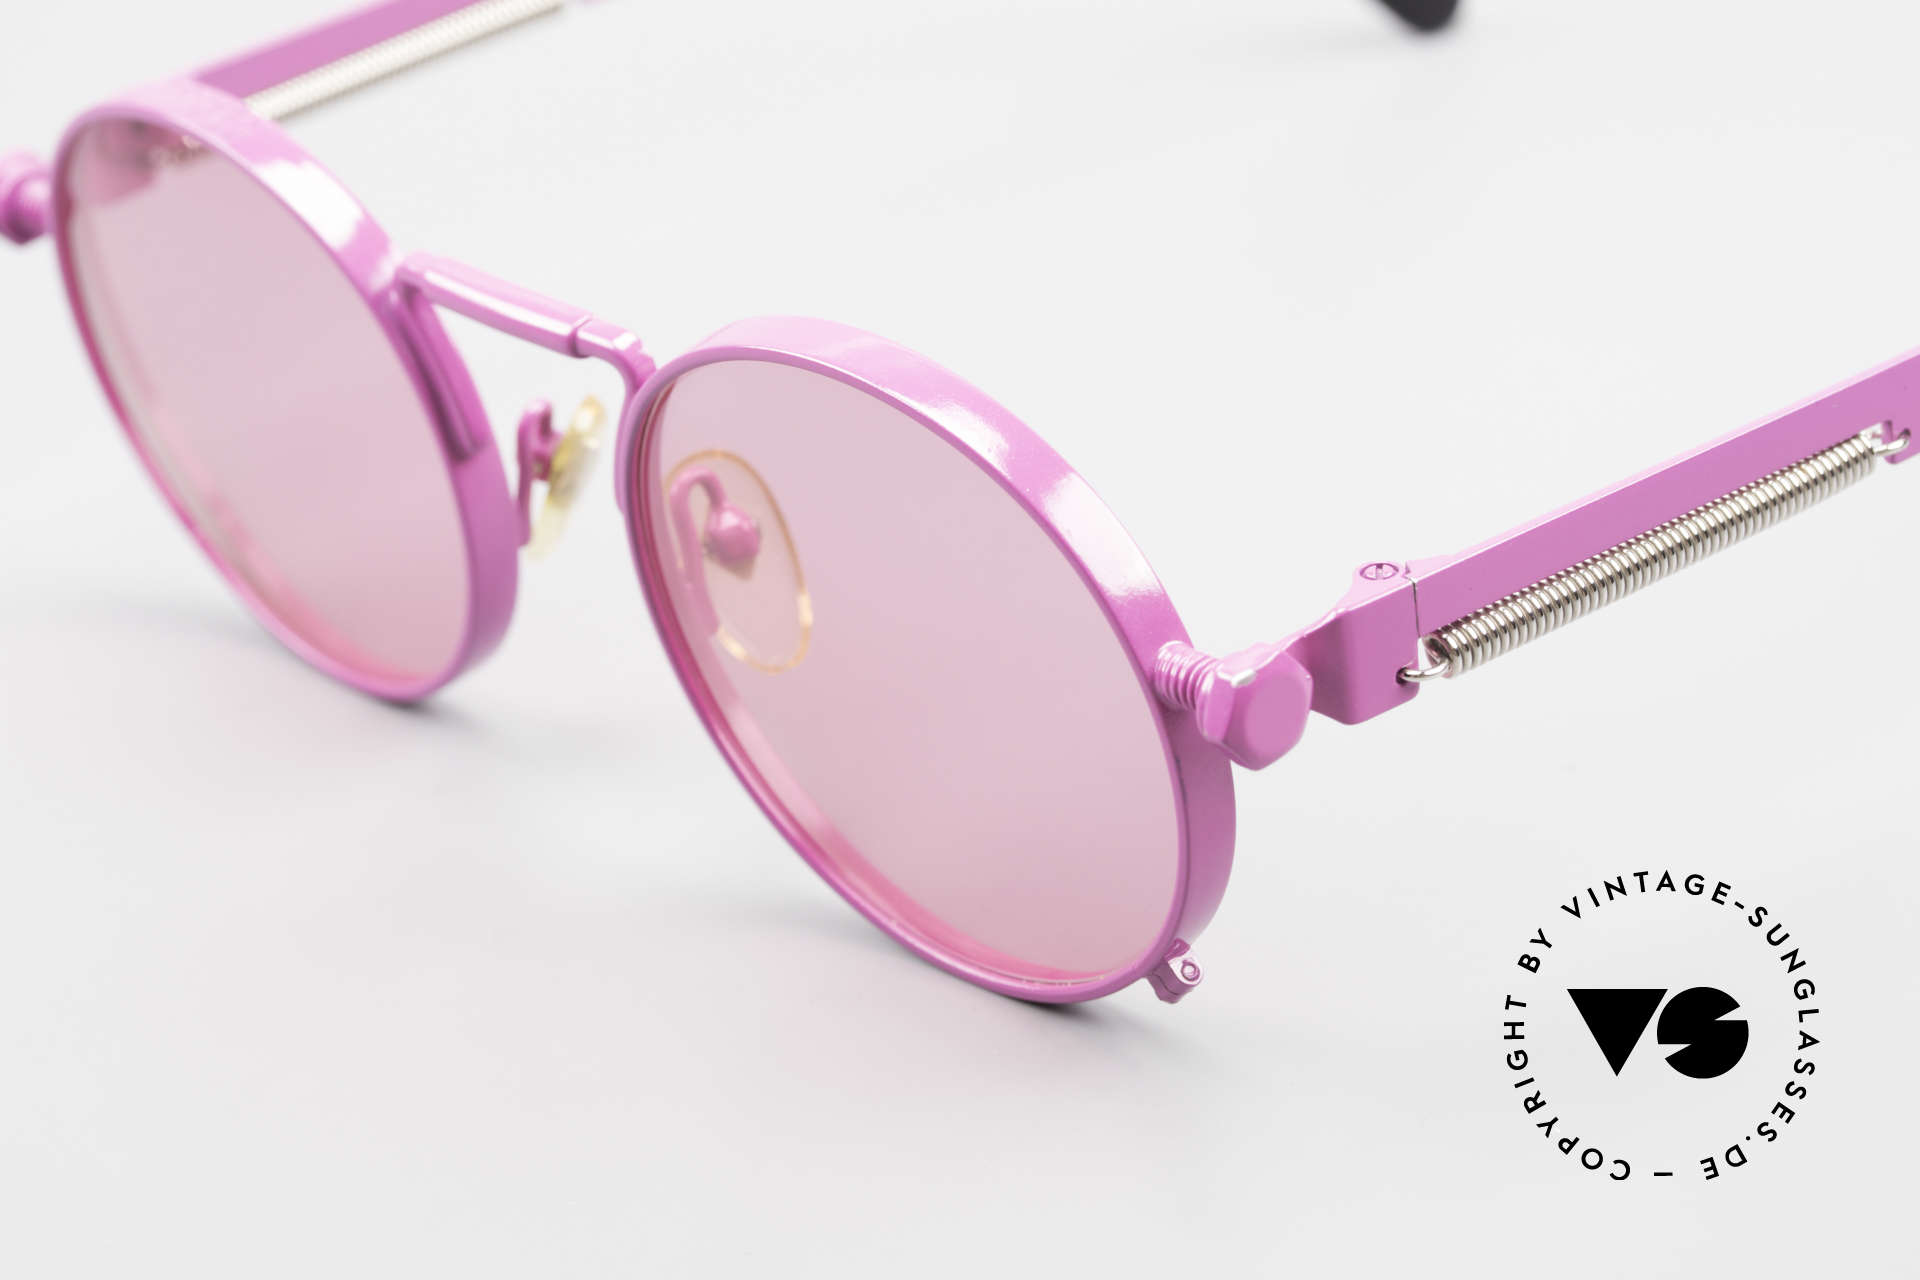 Jean Paul Gaultier 56-8171 Customized Pink Edition, the most wanted Gaultier vintage sunglasses, worldwide, Made for Men and Women